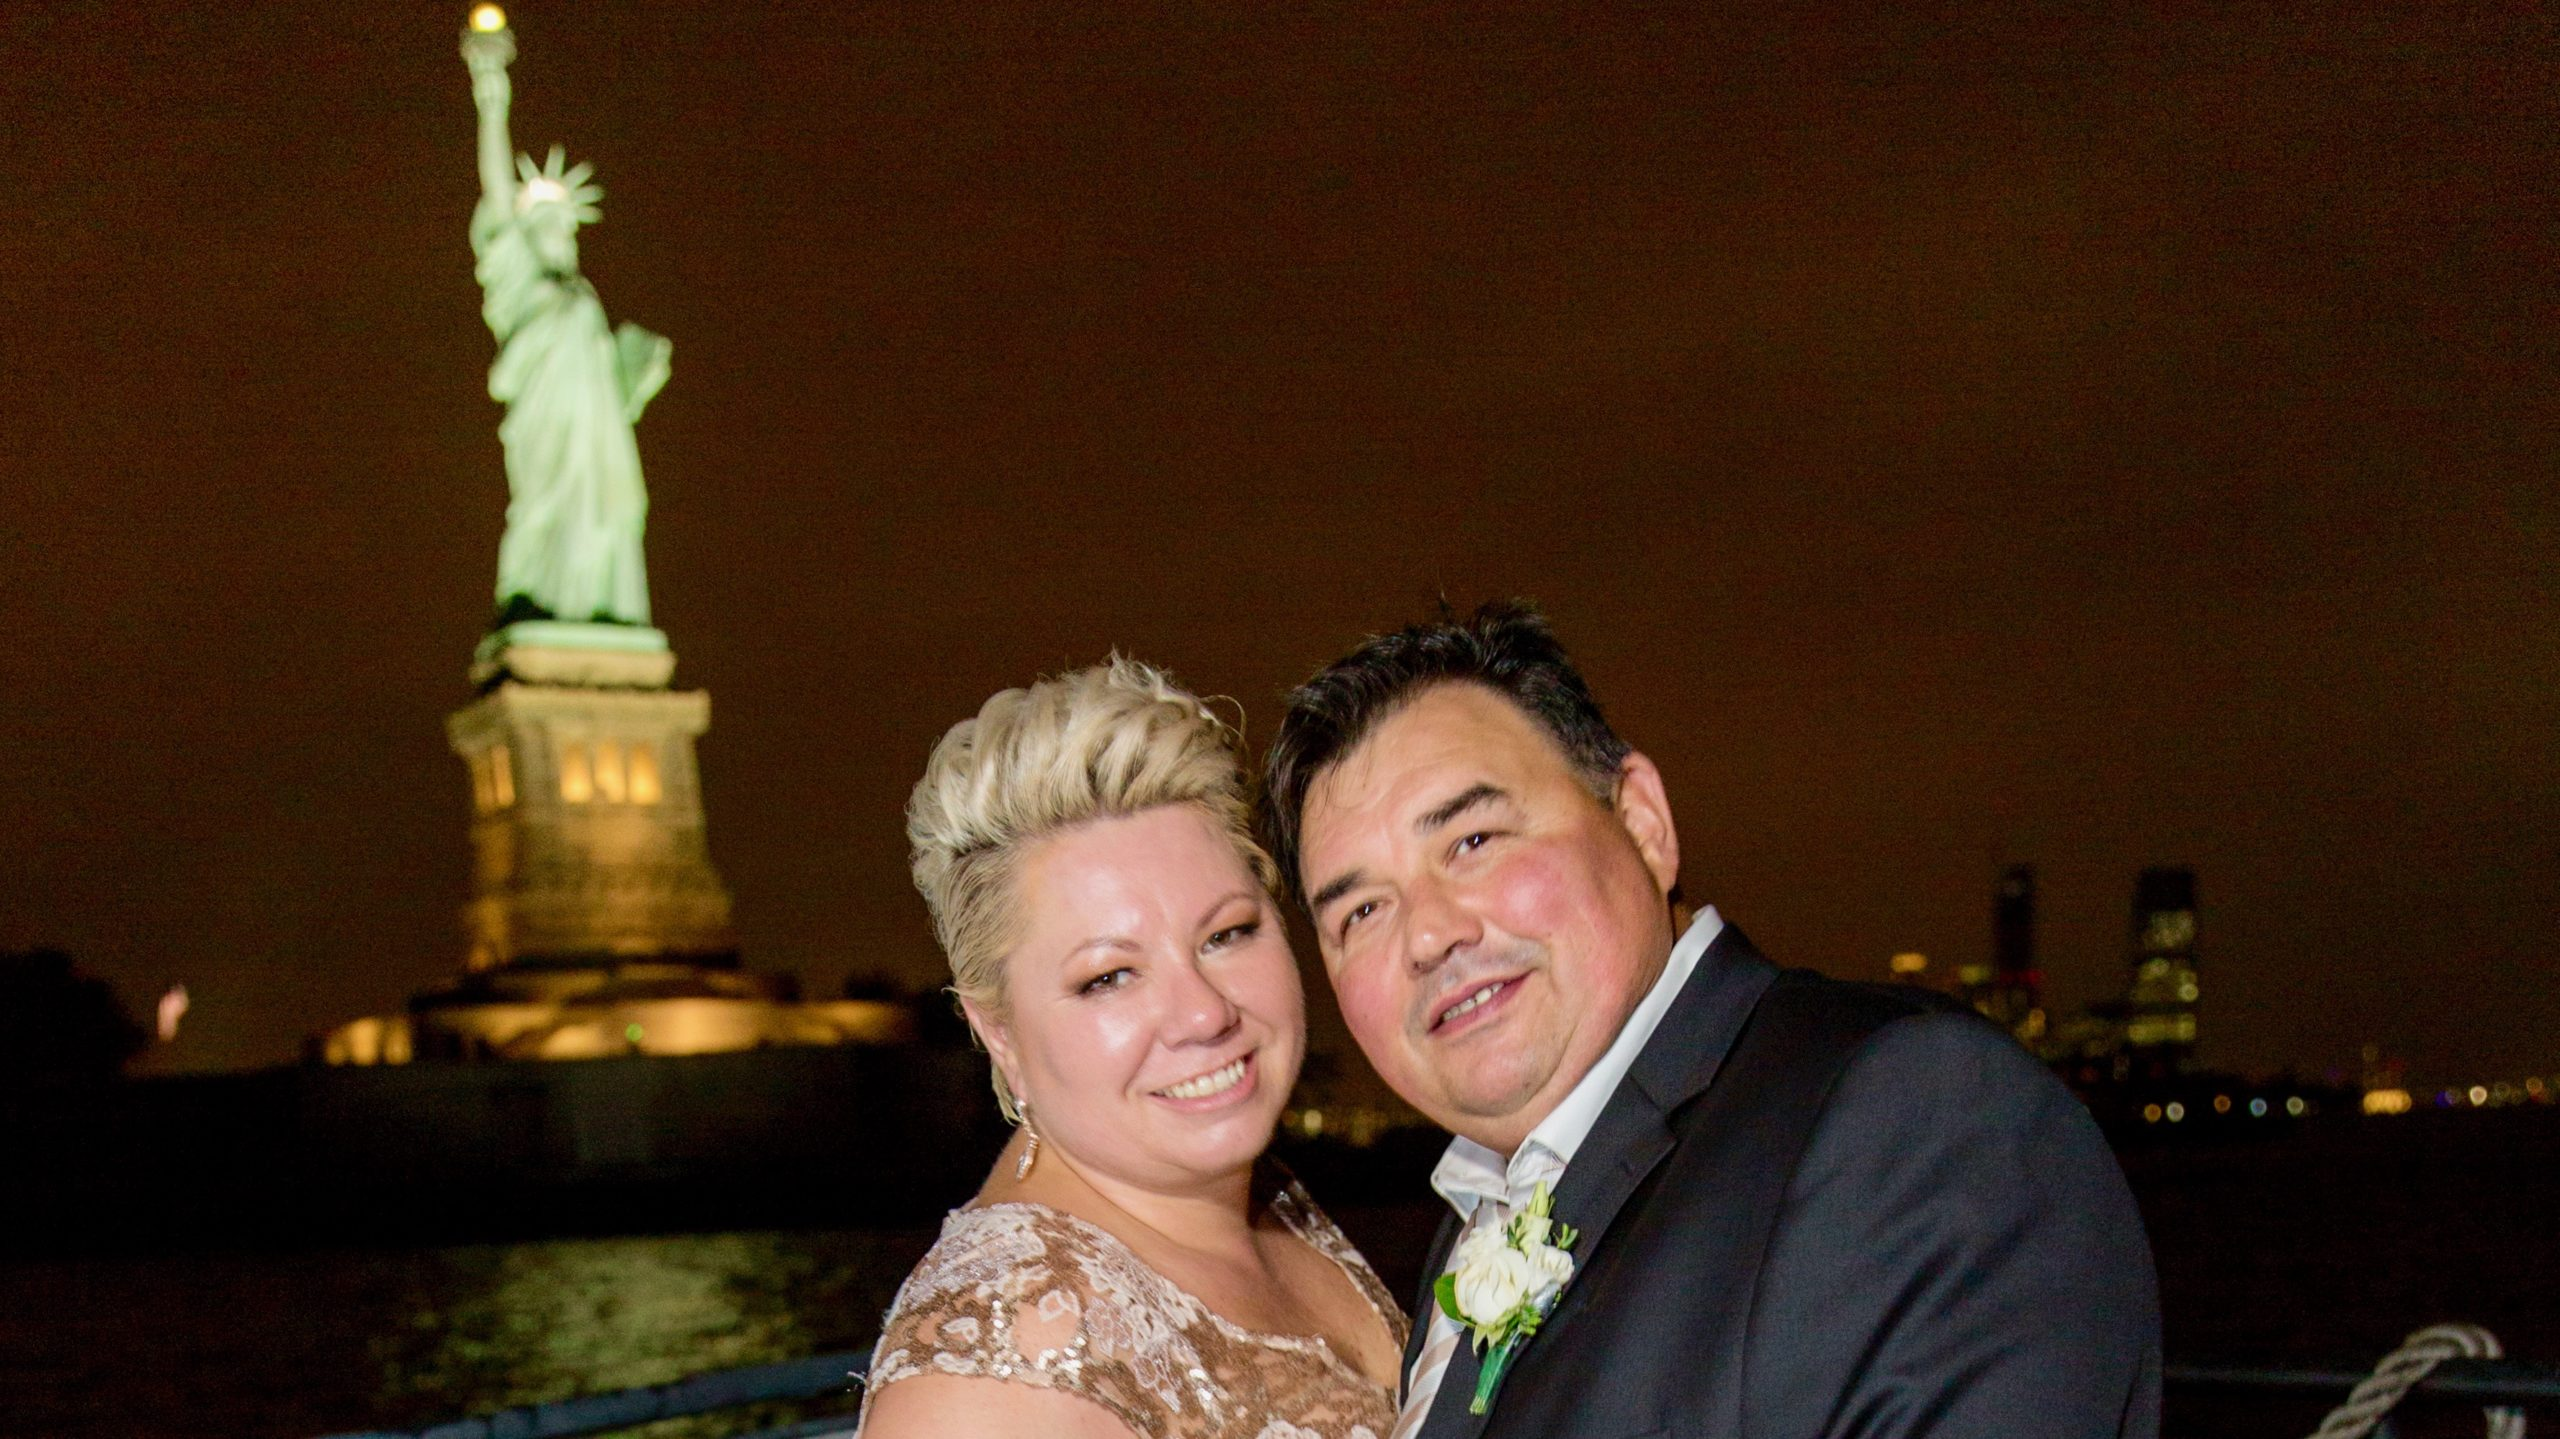 couple photo in front of statue of liberty